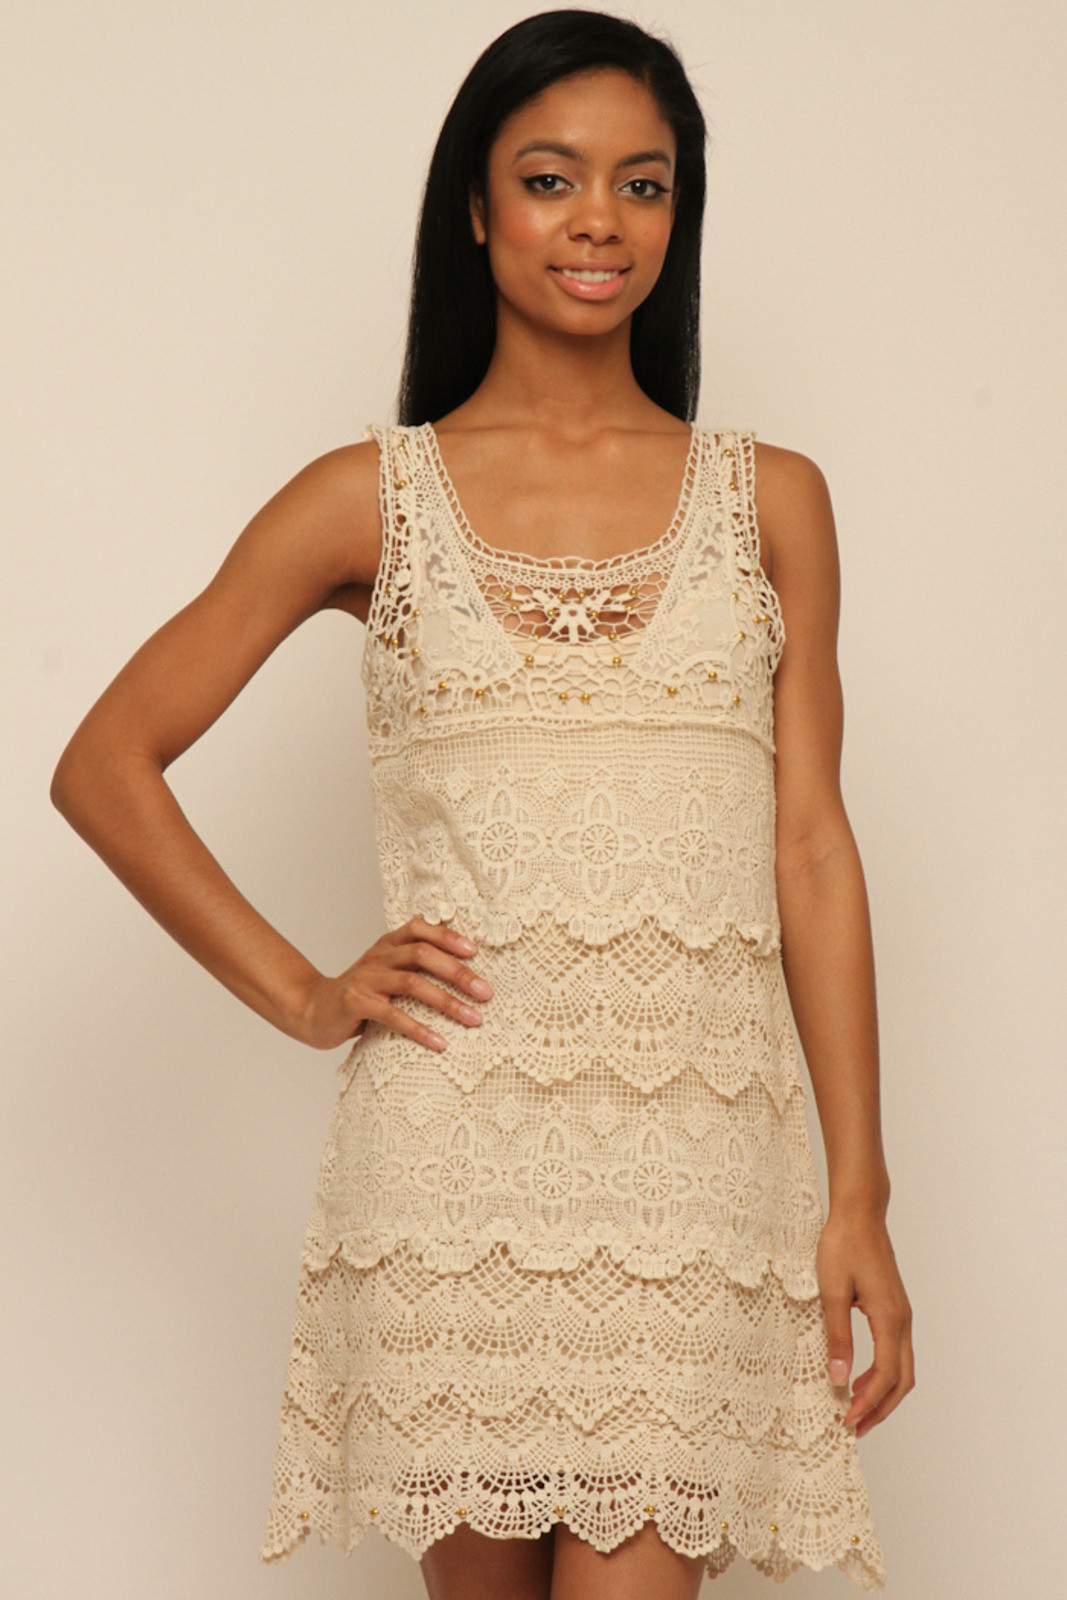 White Crochet Dress New White Crochet Dress — Shoptiques Of Adorable 49 Pics White Crochet Dress